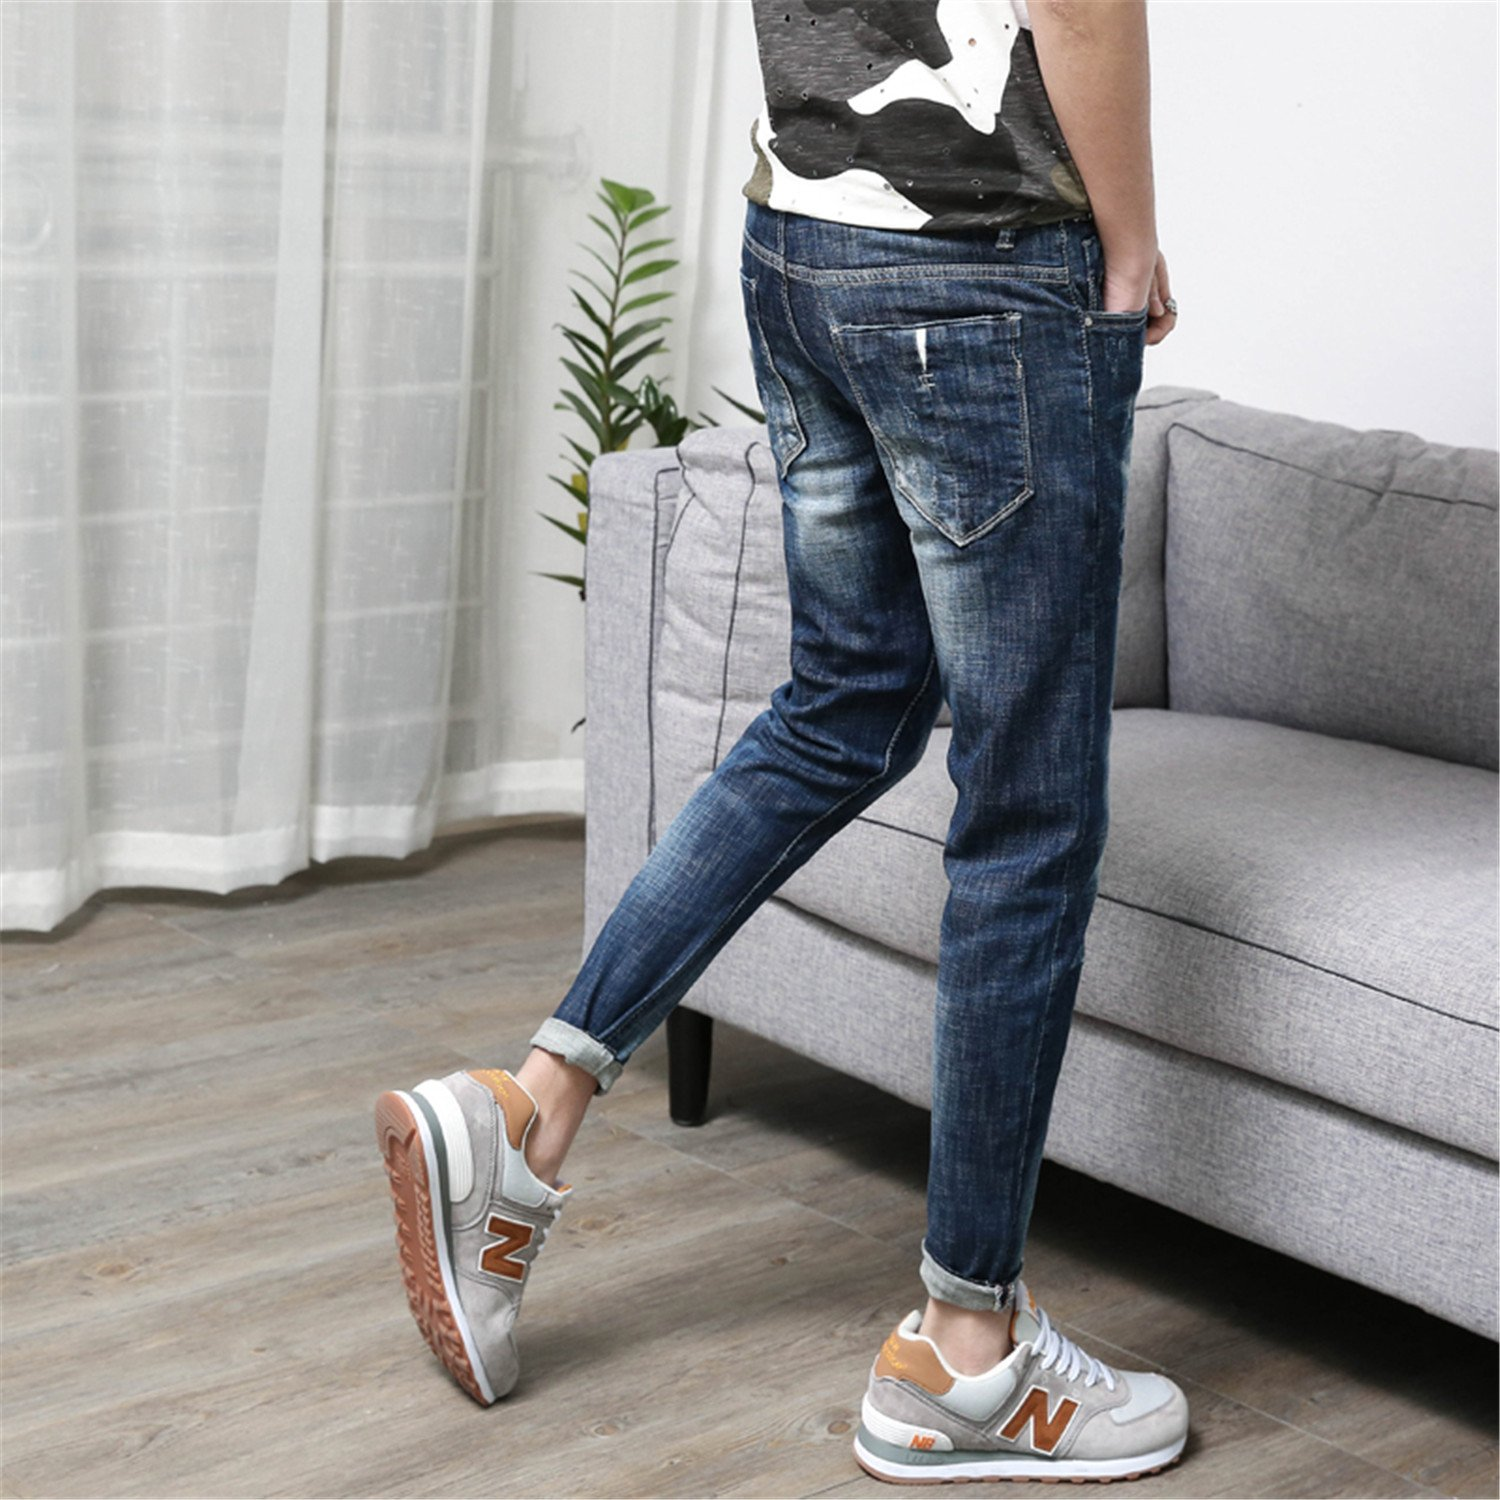 794e2fe729df Zcaosma Men Jeans Stretch Ripped Ankle Zipper Slim Summer Skinny Pants  Trousers at Amazon Men s Clothing store